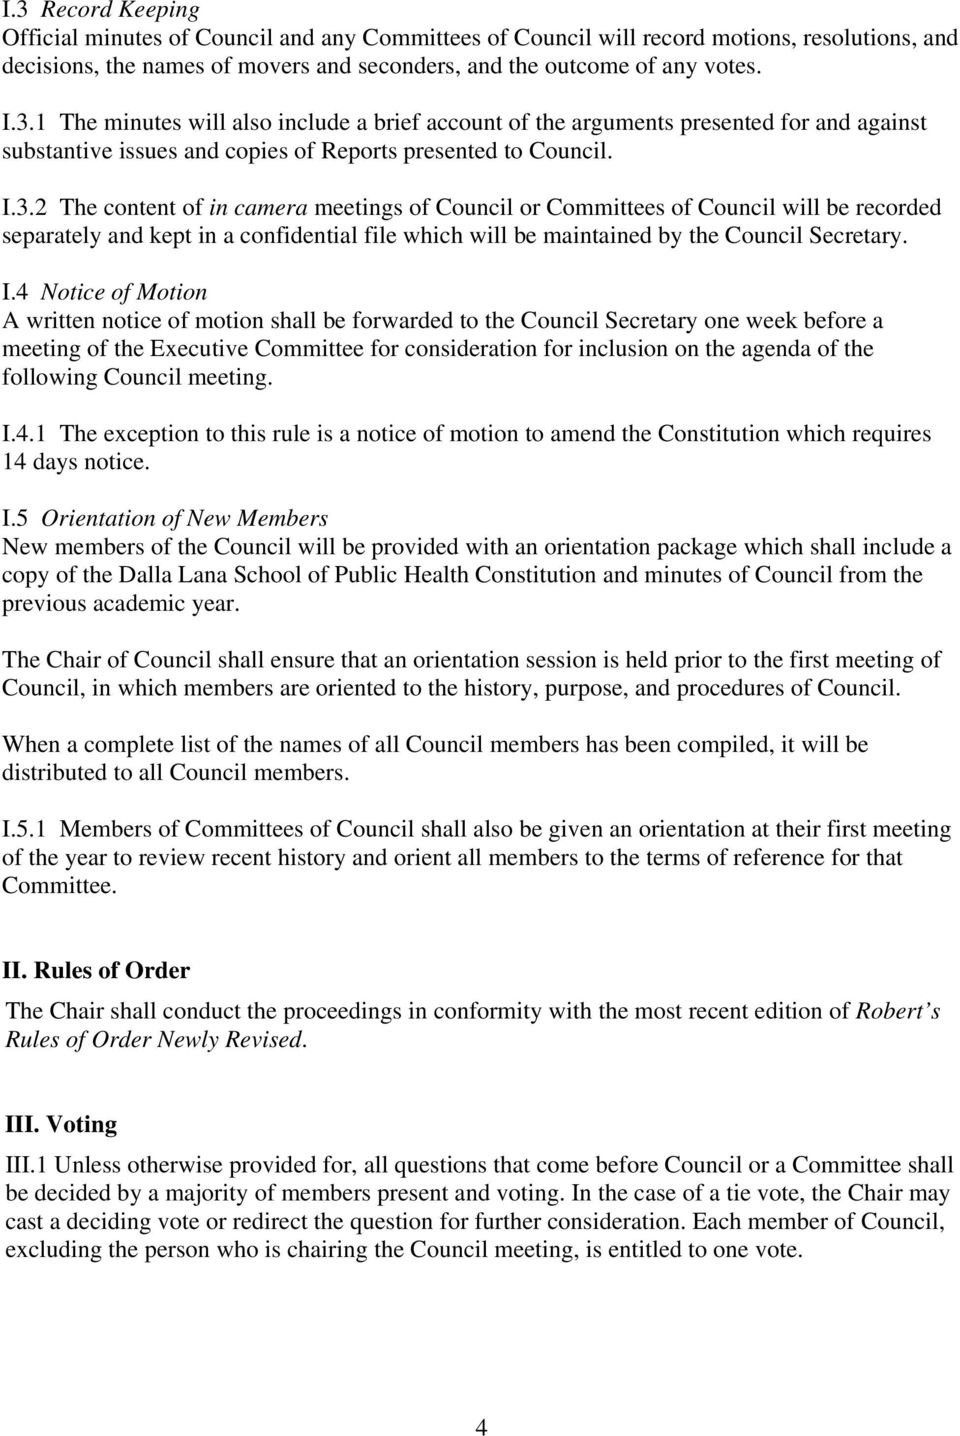 4 Notice of Motion A written notice of motion shall be forwarded to the Council Secretary one week before a meeting of the Executive Committee for consideration for inclusion on the agenda of the